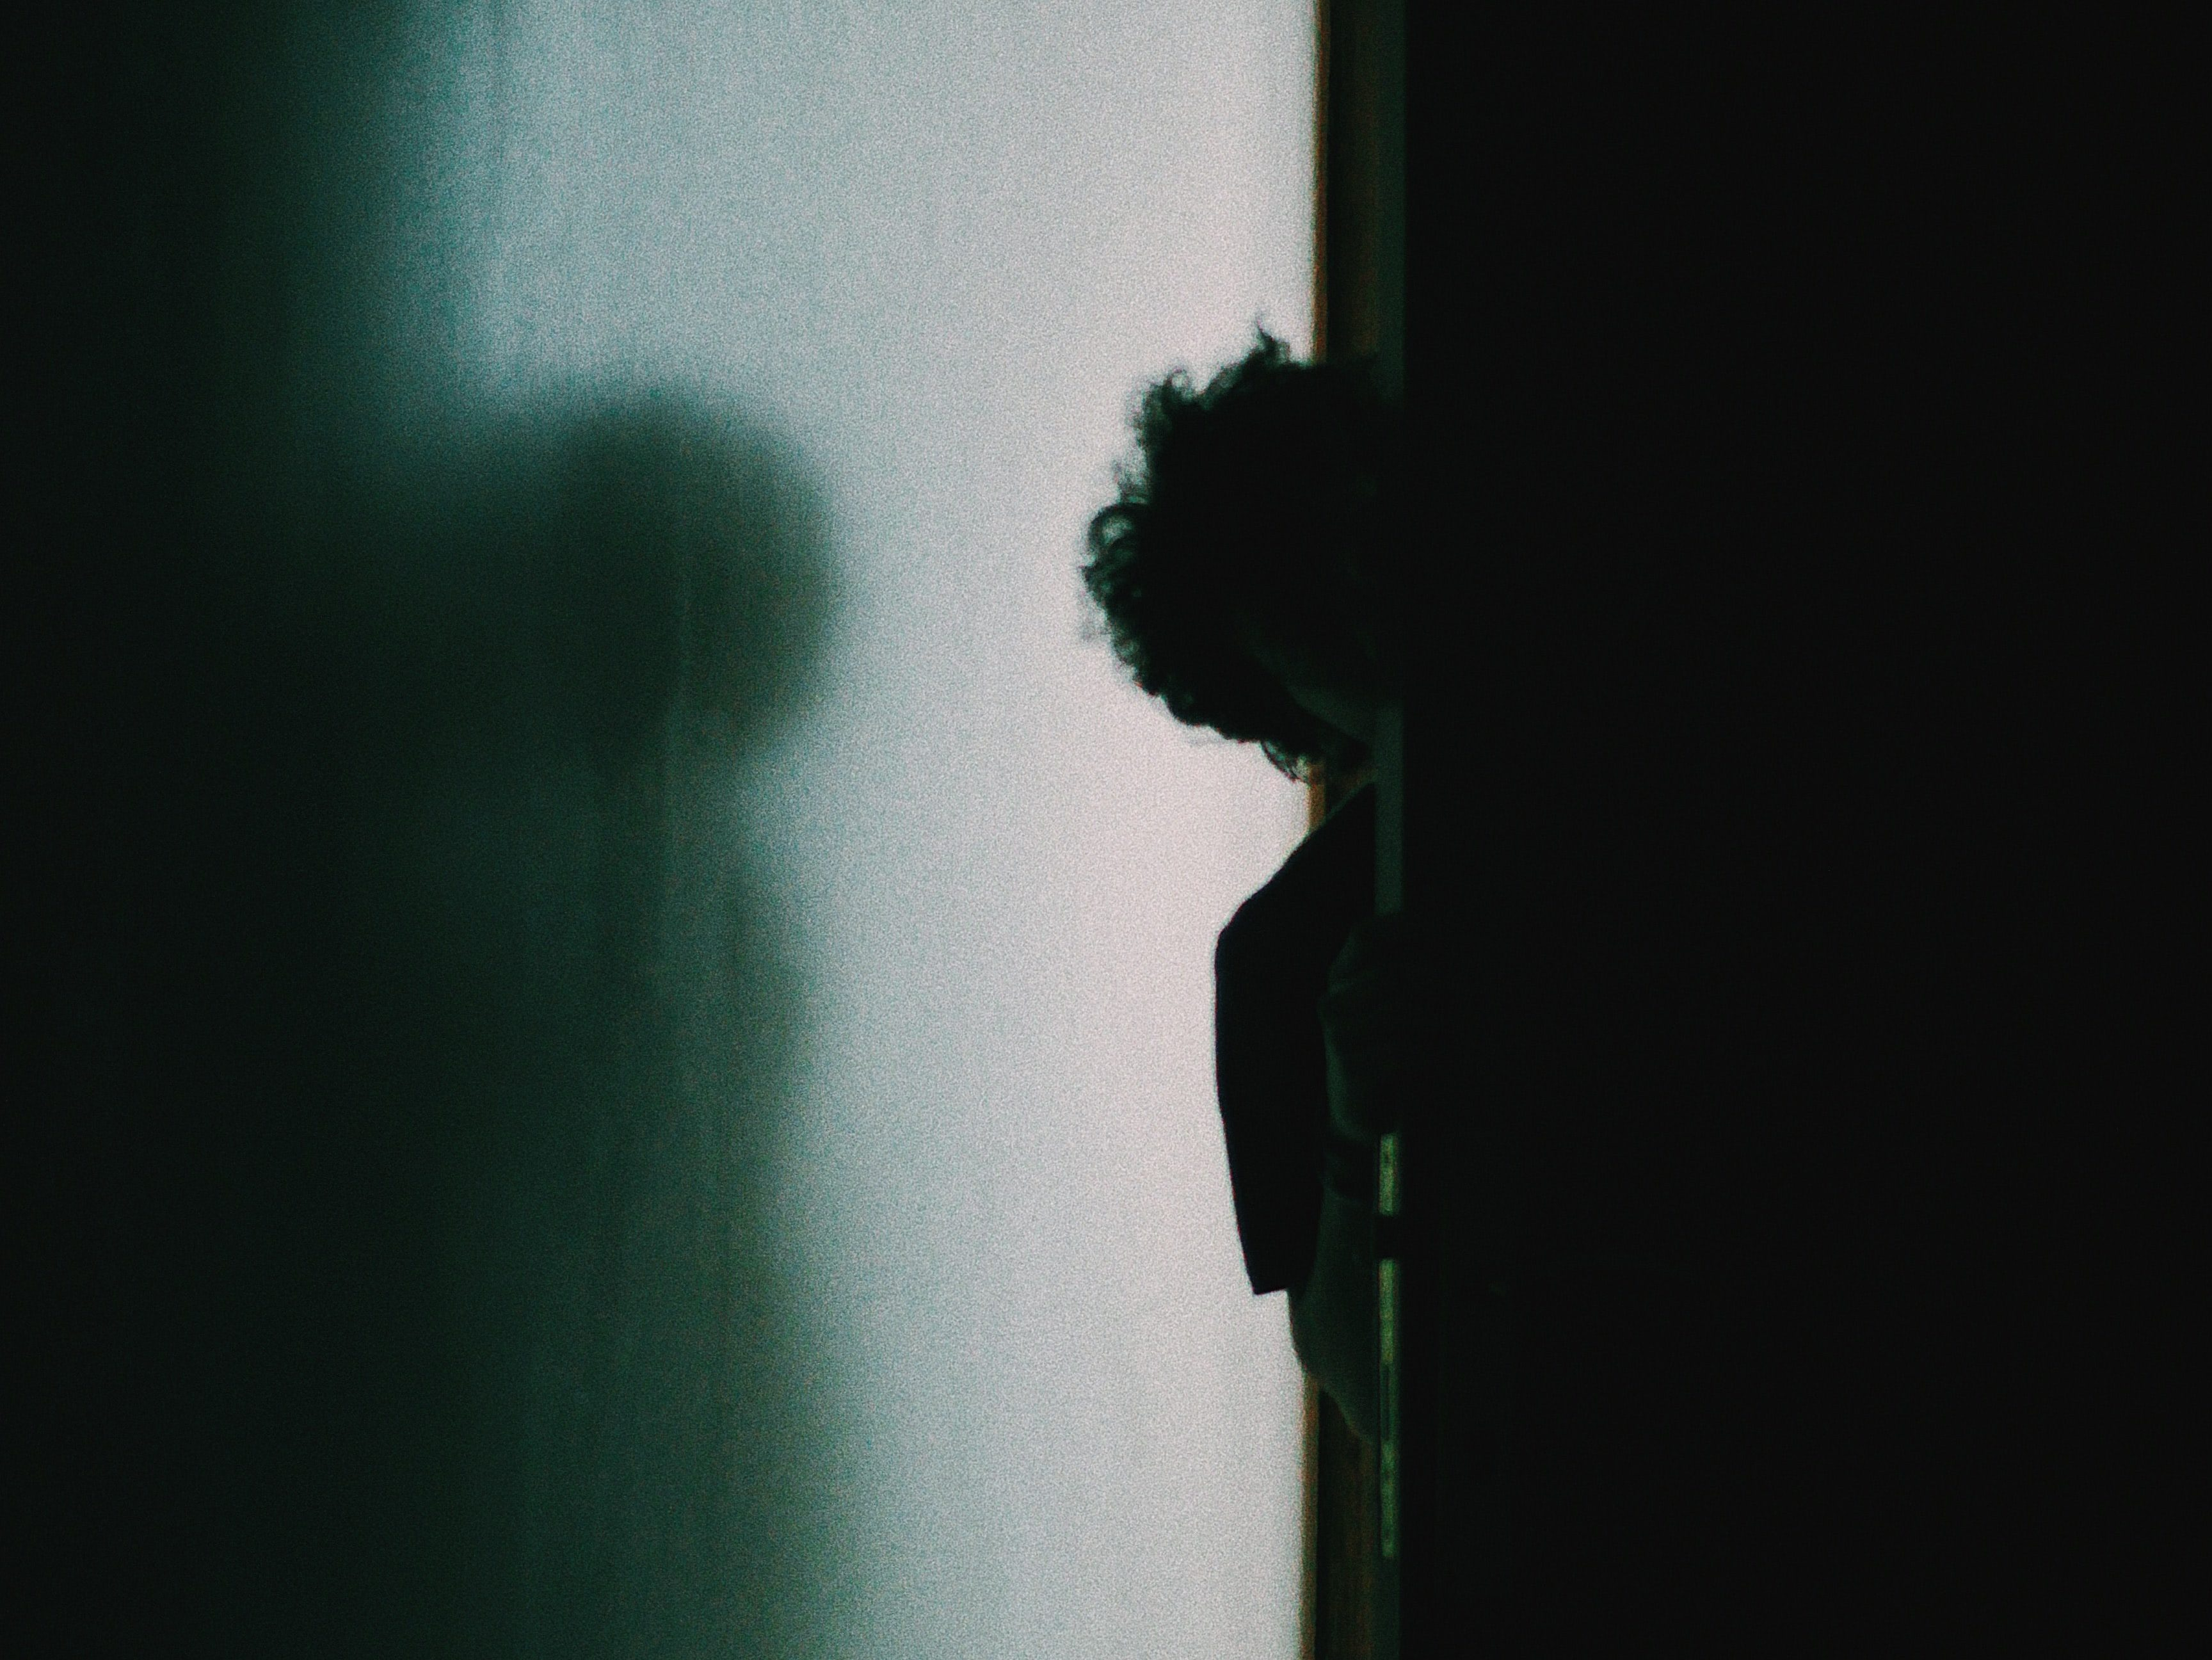 A silhouette of a person peers around a corner.